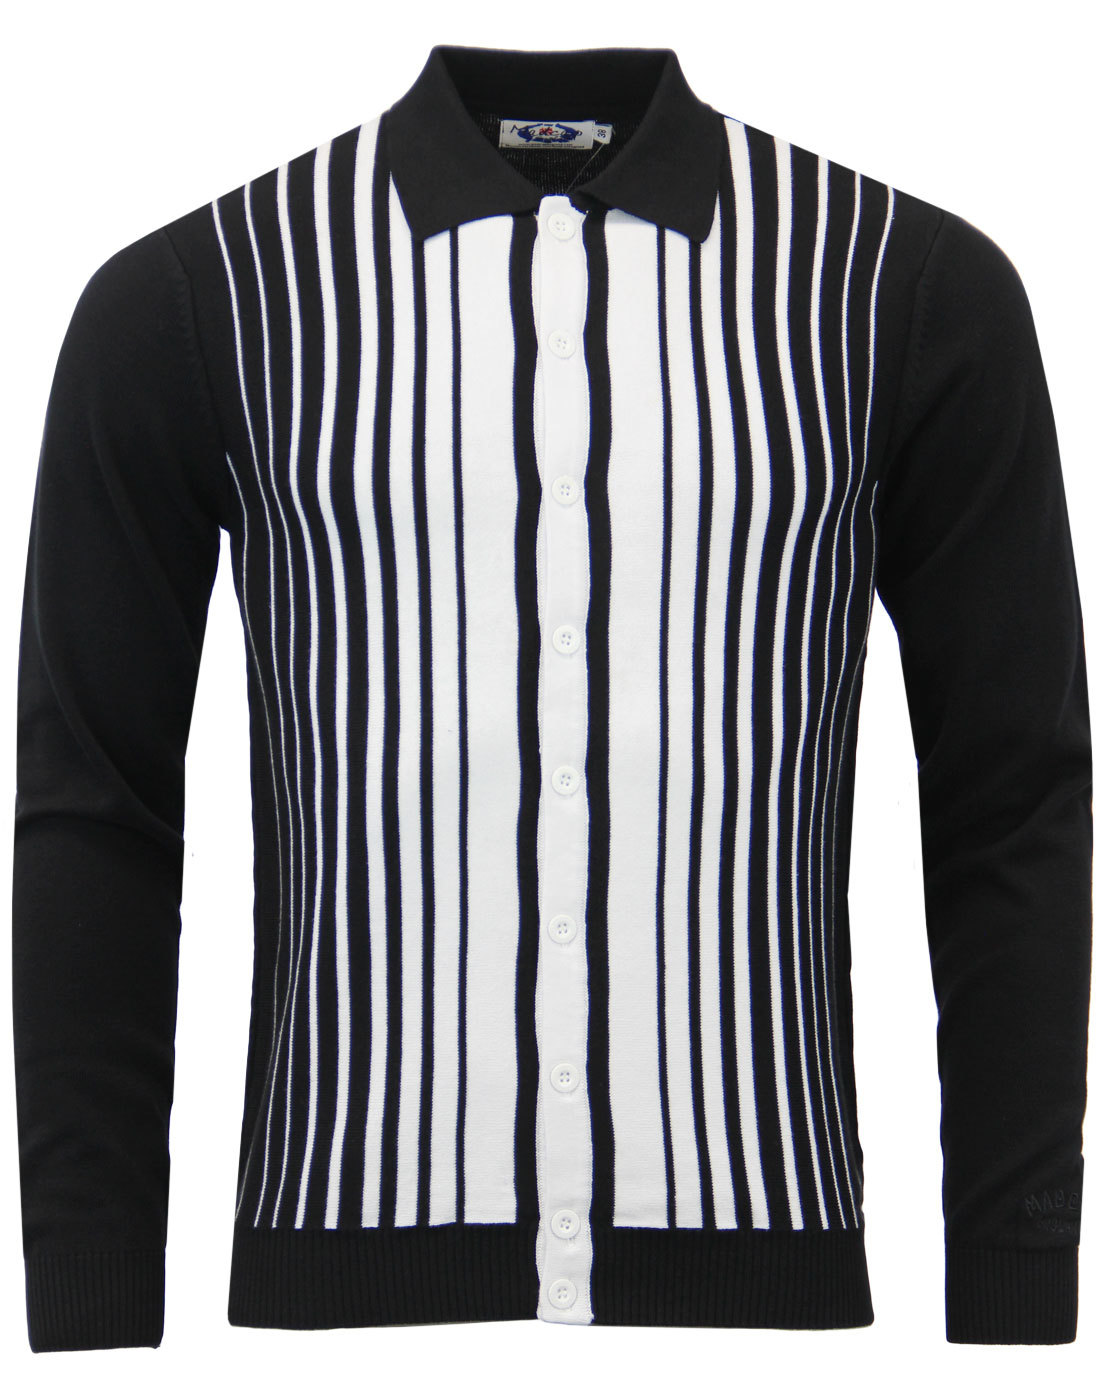 Everly MADCAP ENGLAND 60s Mod Stripe Polo Cardigan